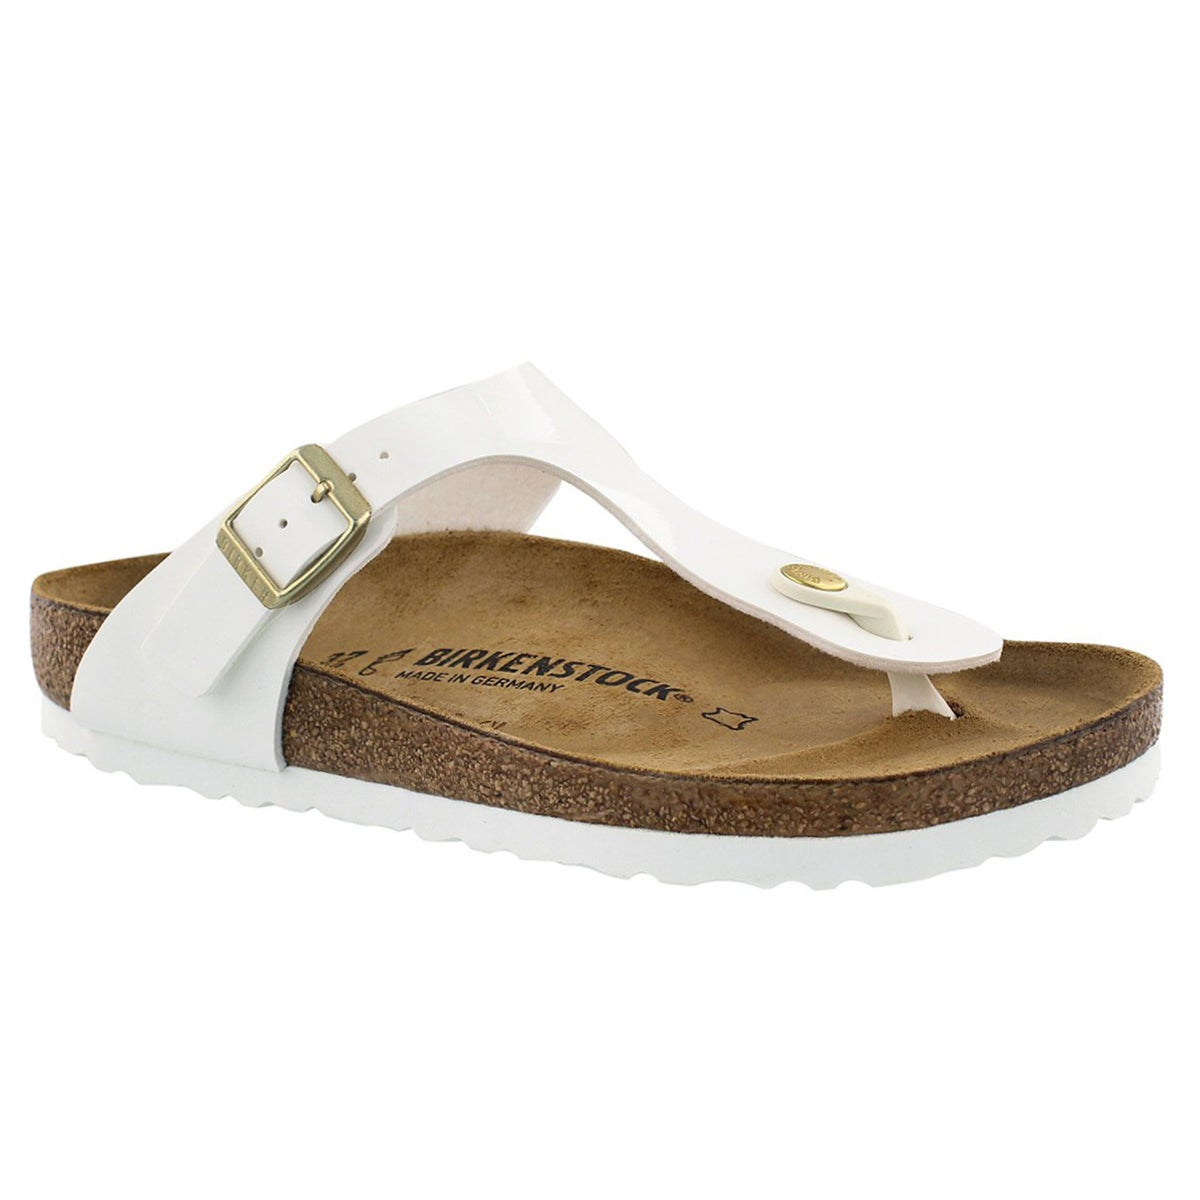 Women's GIZEH white/gold buckle BF thong sandals